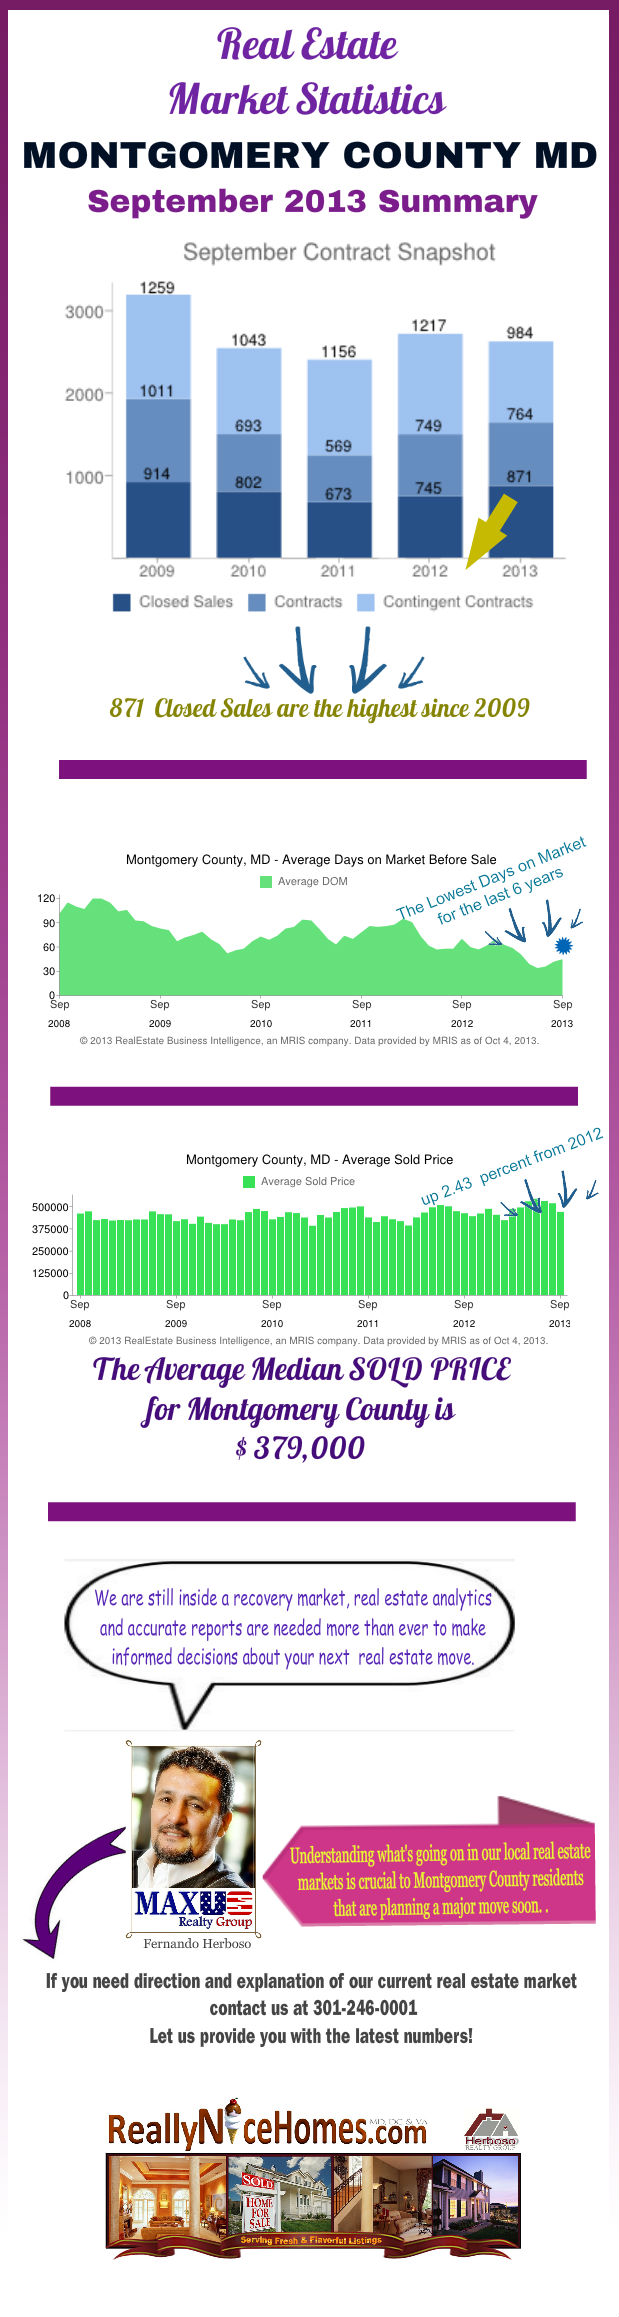 Montgomery County MD Real Estate